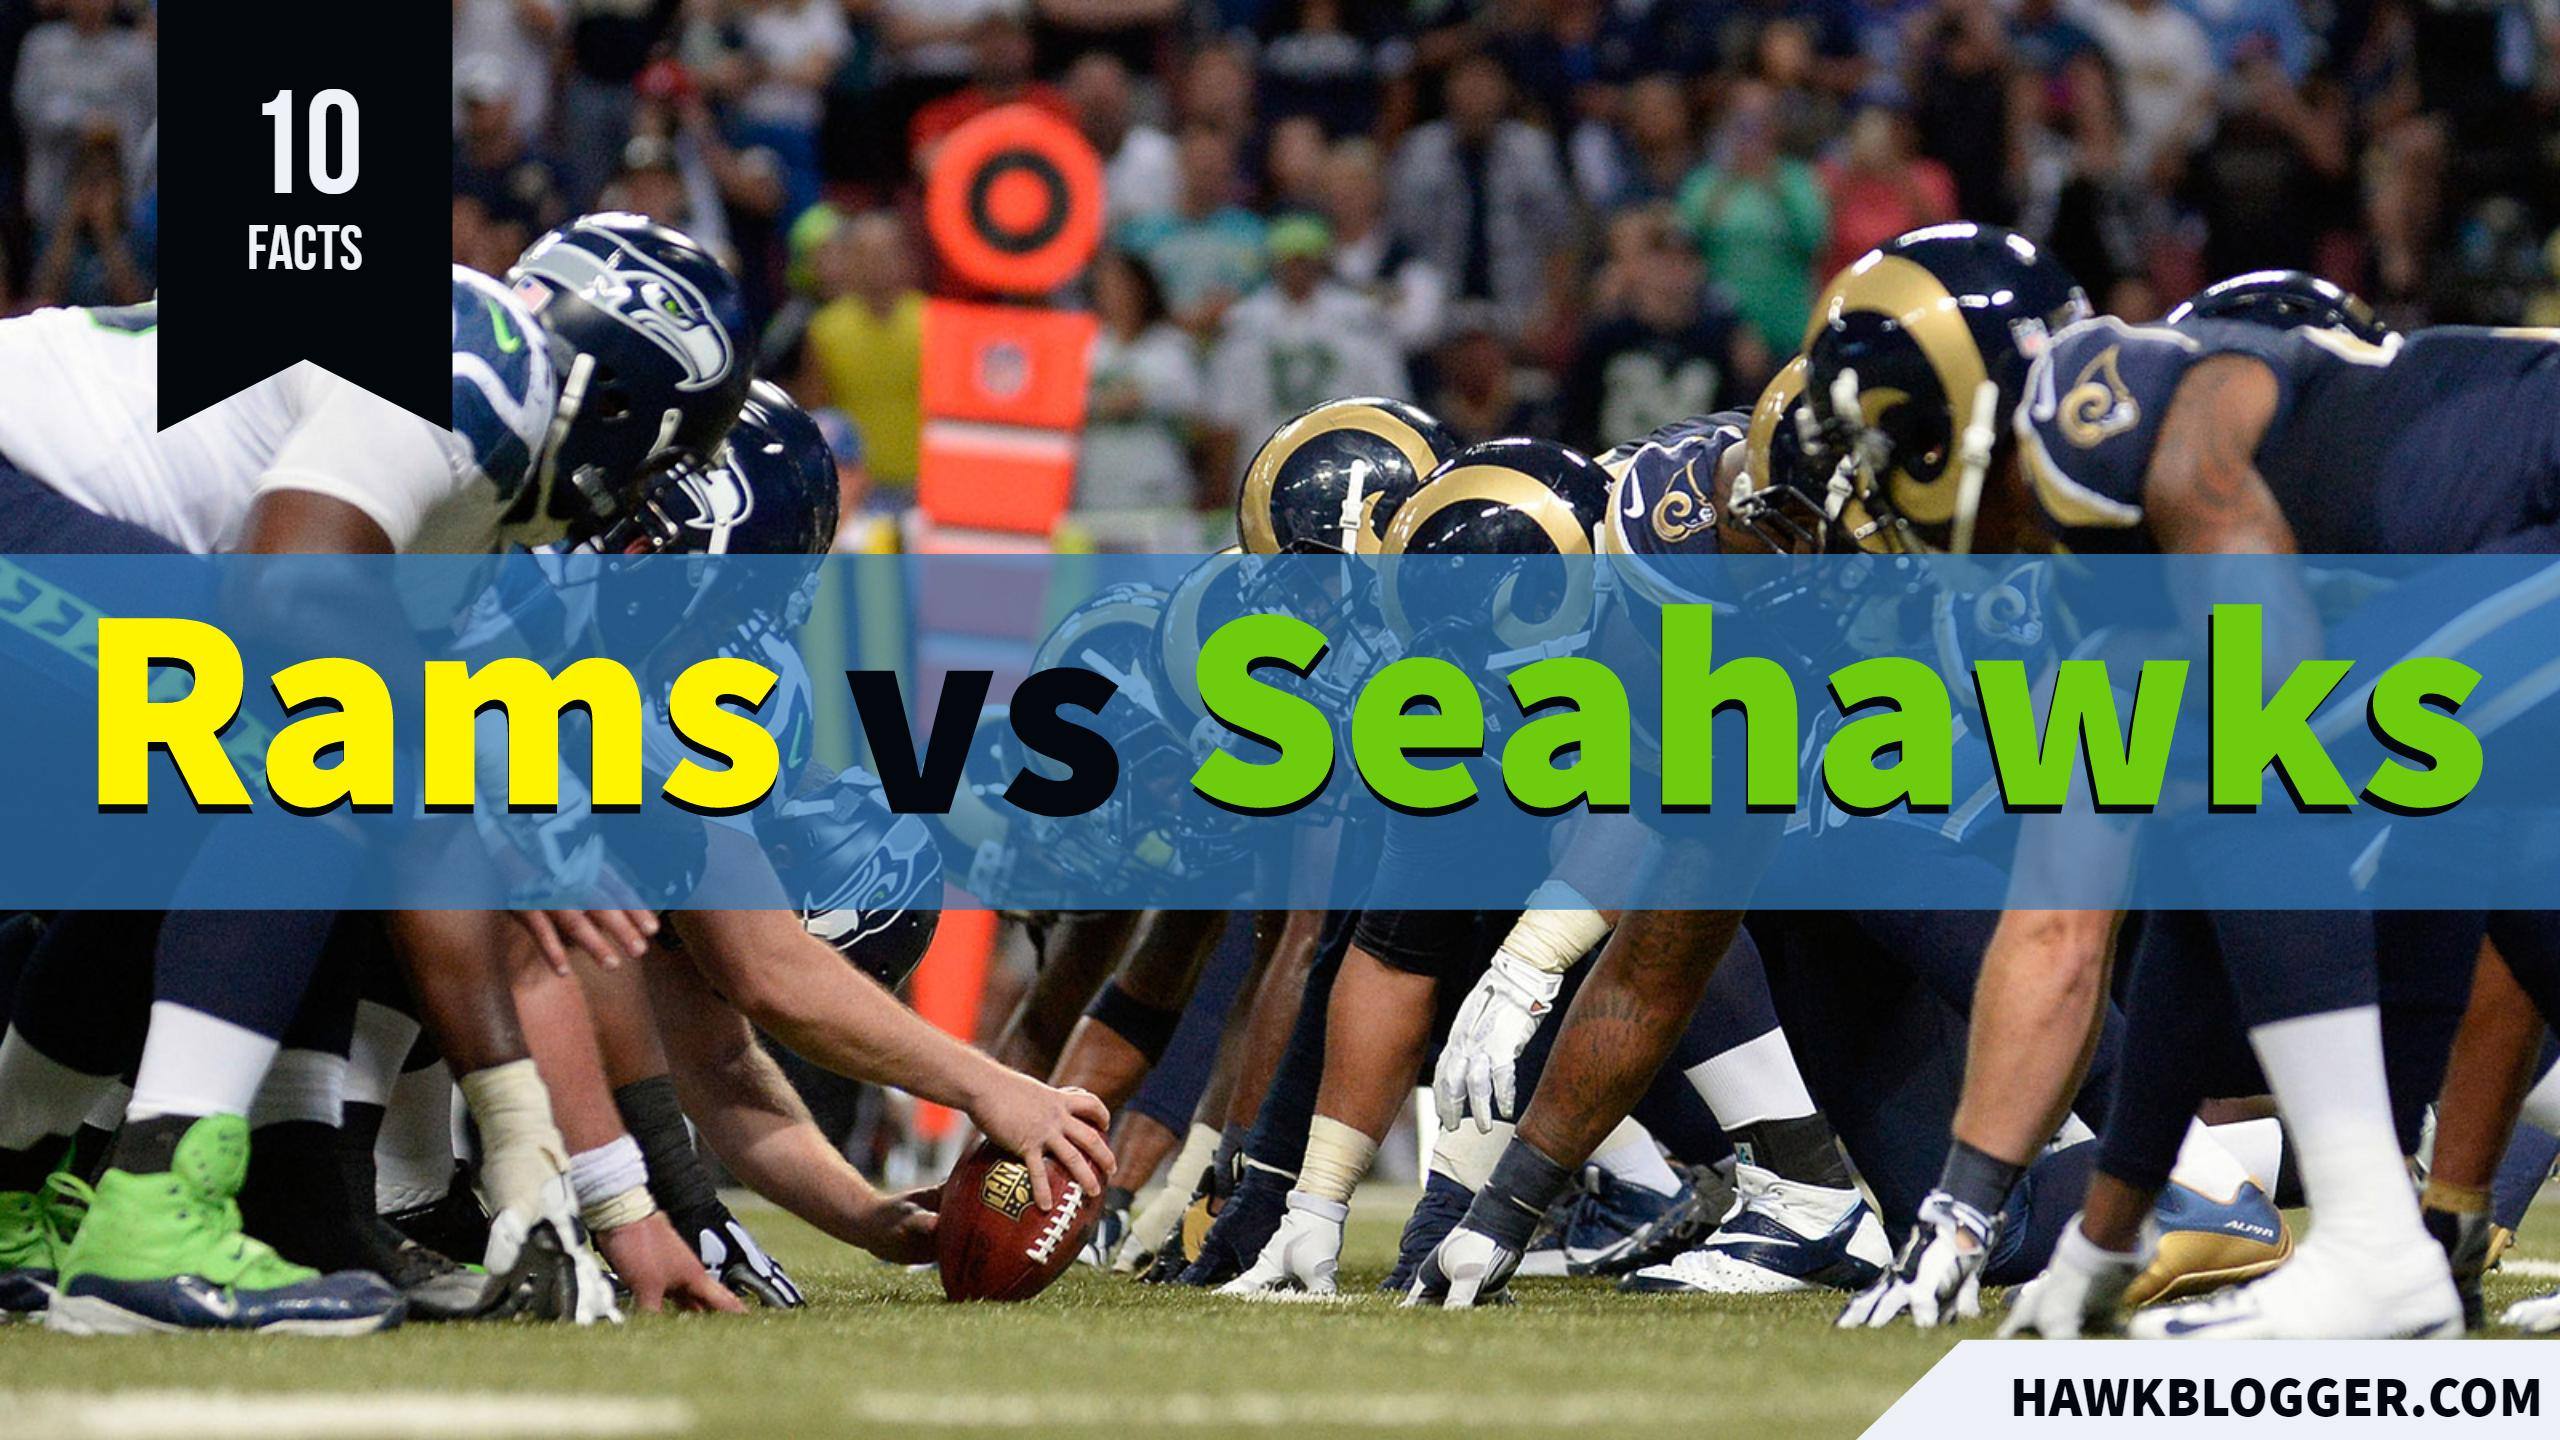 10 Facts You Should Know About Rams Vs Seahawks Hawk Blogger